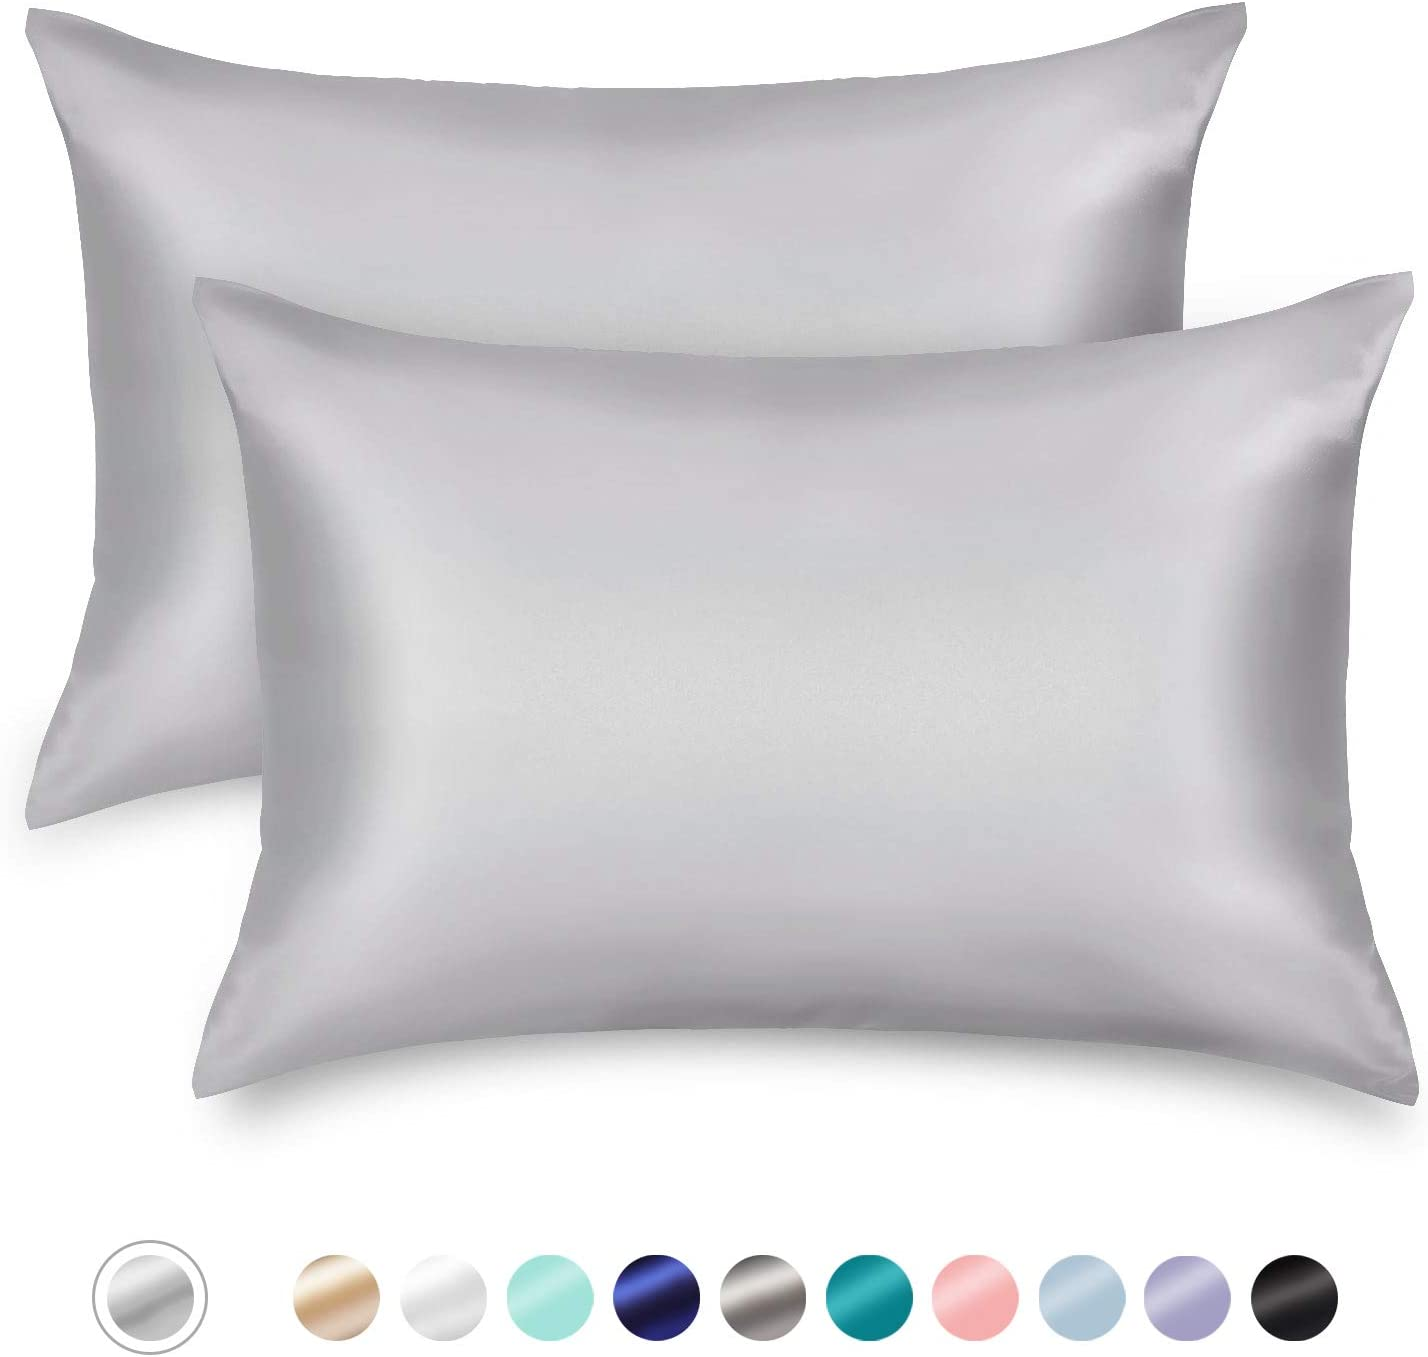 ZAMAT Silky Satin Pillowcases Set of 2, Luxury Soft Pillow Case for Hair and Skin, Wrinkle, Fade Resistant, Cooling Pillow Cover with Envelope Closure (Silver Grey, Queen)